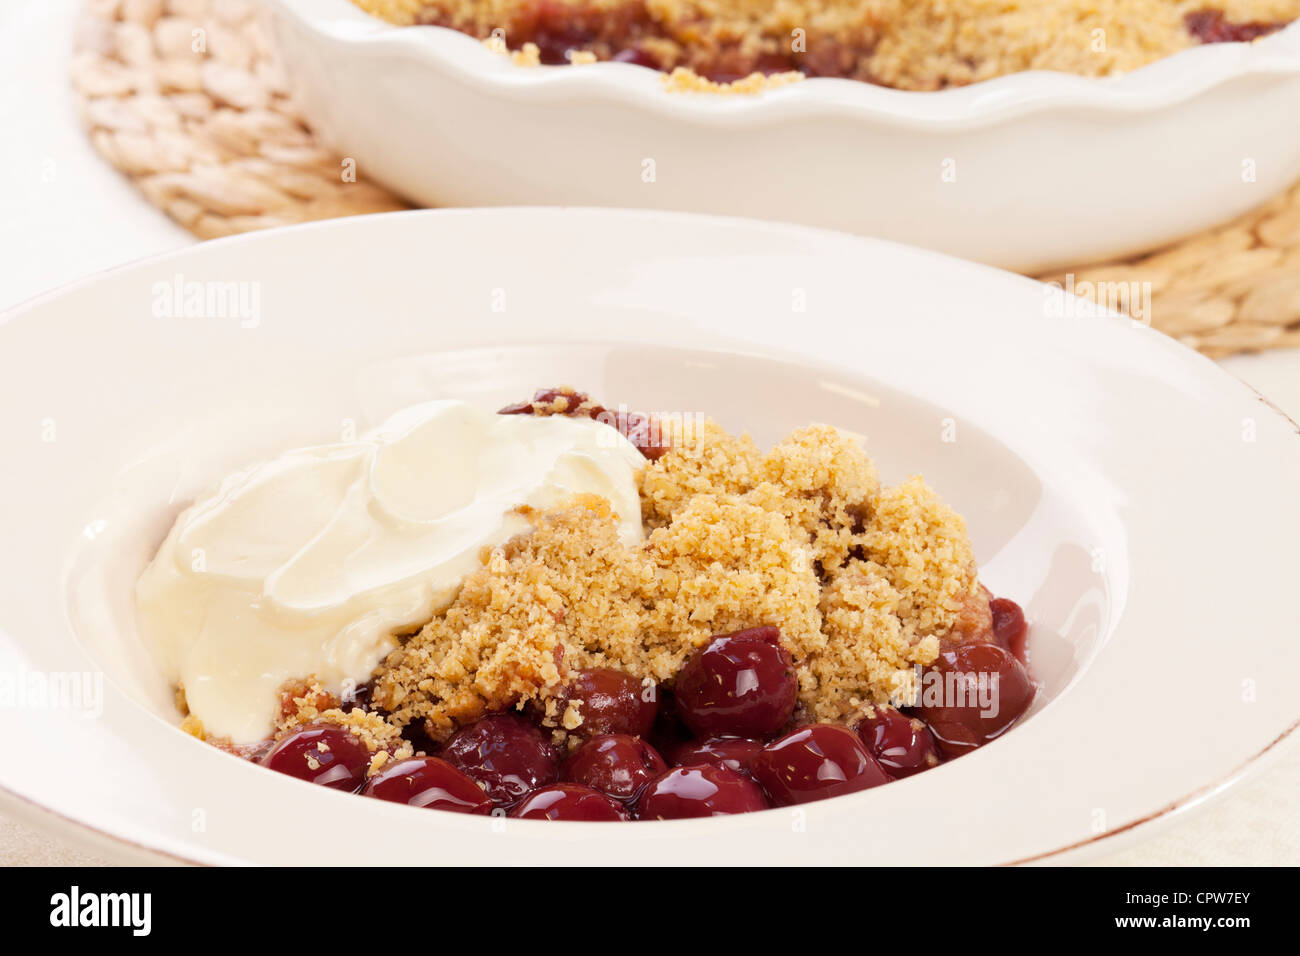 A bowl of cherry crumble served with greek yoghurt. - Stock Image